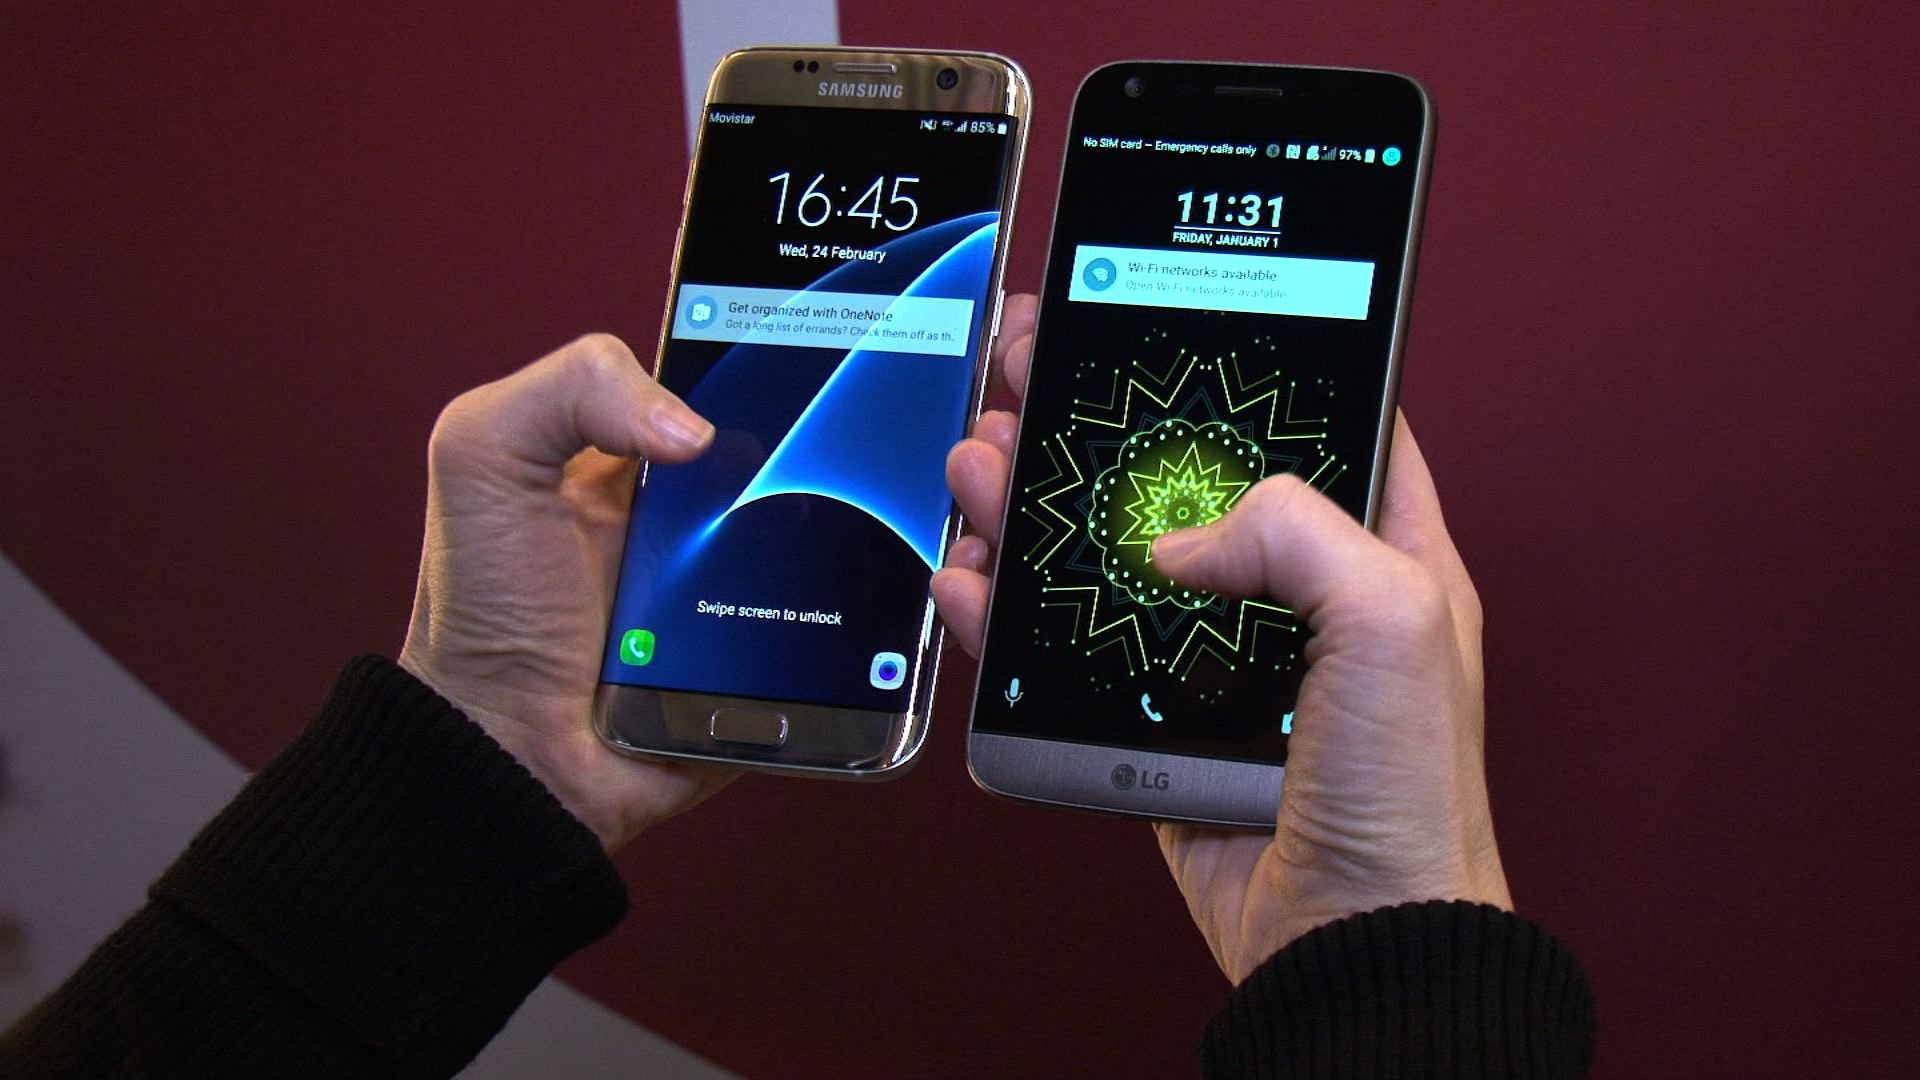 Video: Samsung Galaxy S7 vs. LG G5